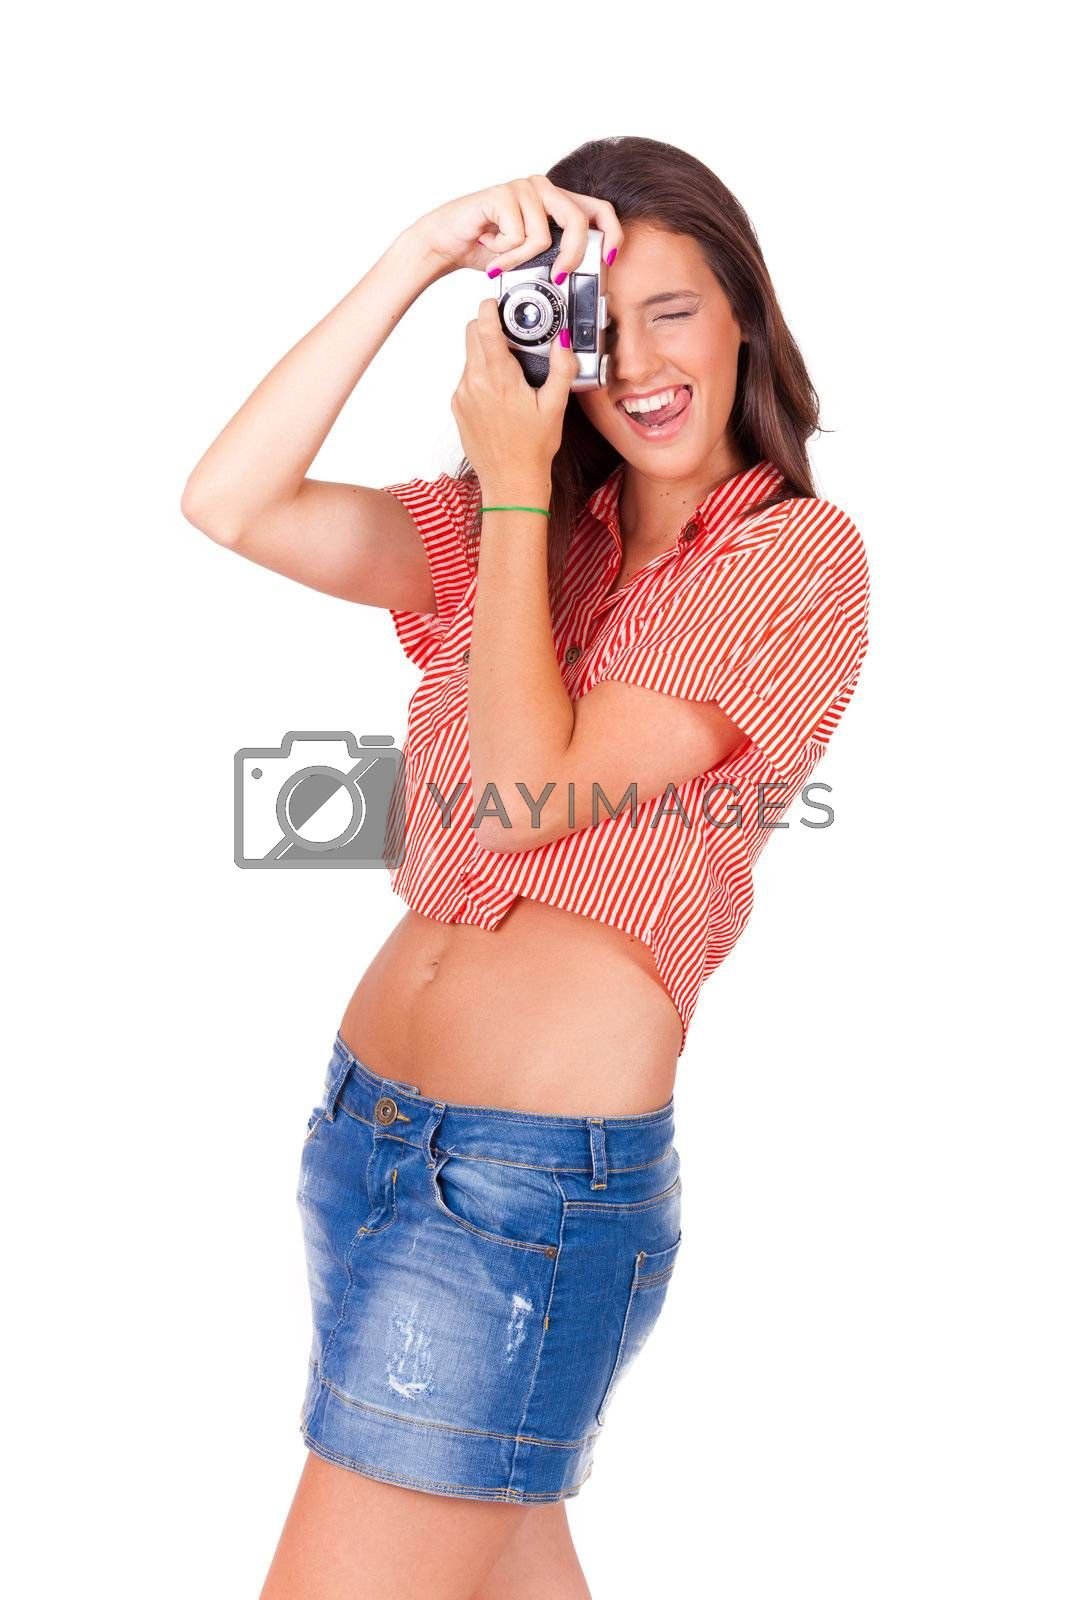 young women taking pictures with vintage camera on white background